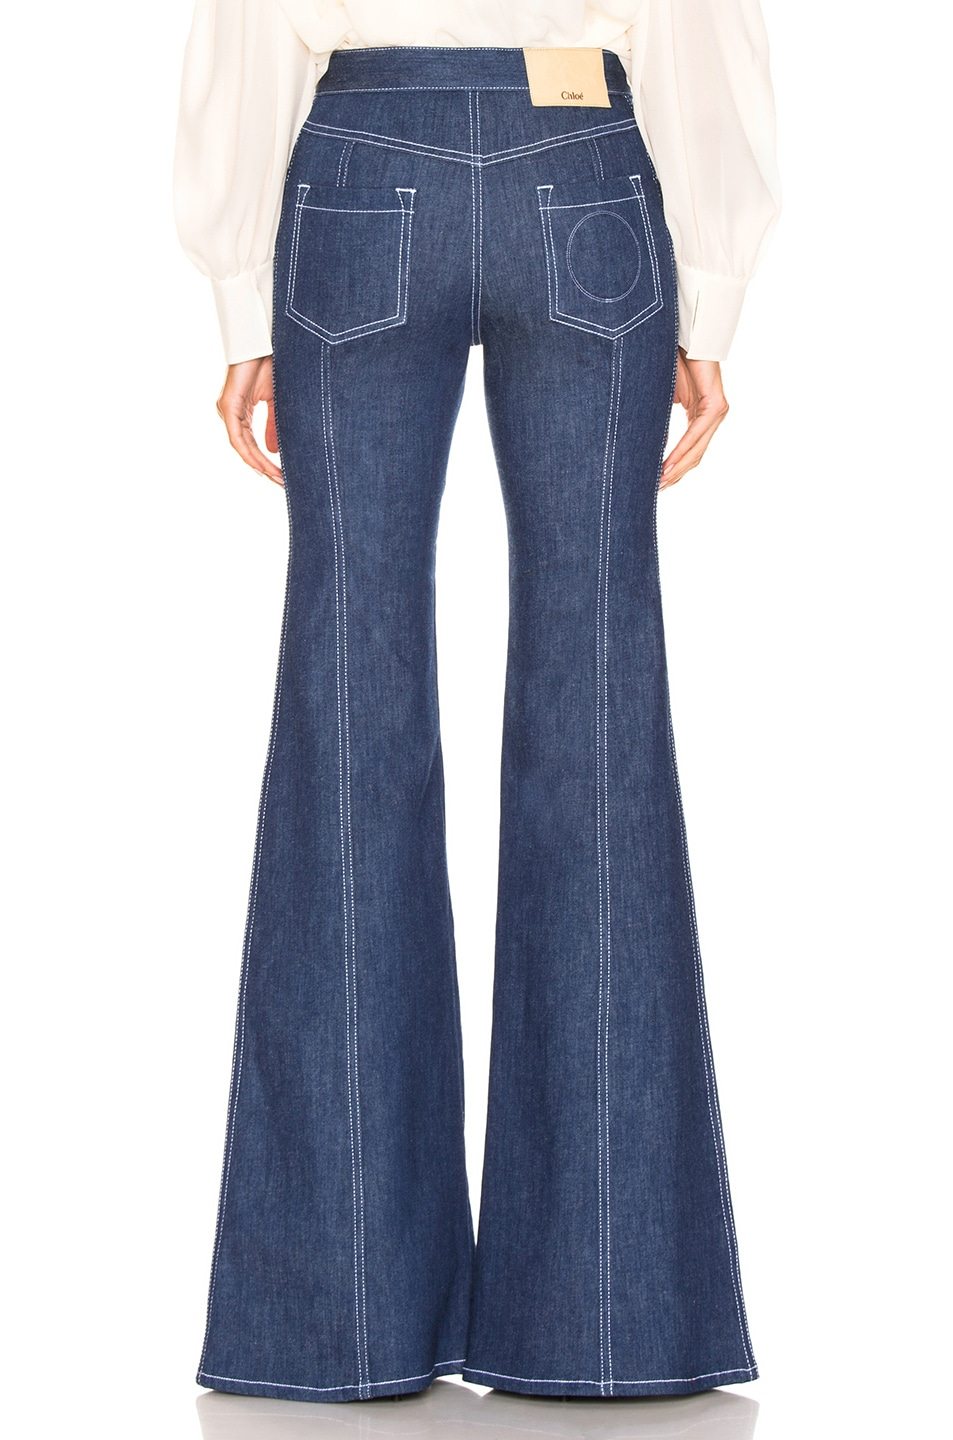 Image 3 of Chloe Flare Jean in Denim Blue